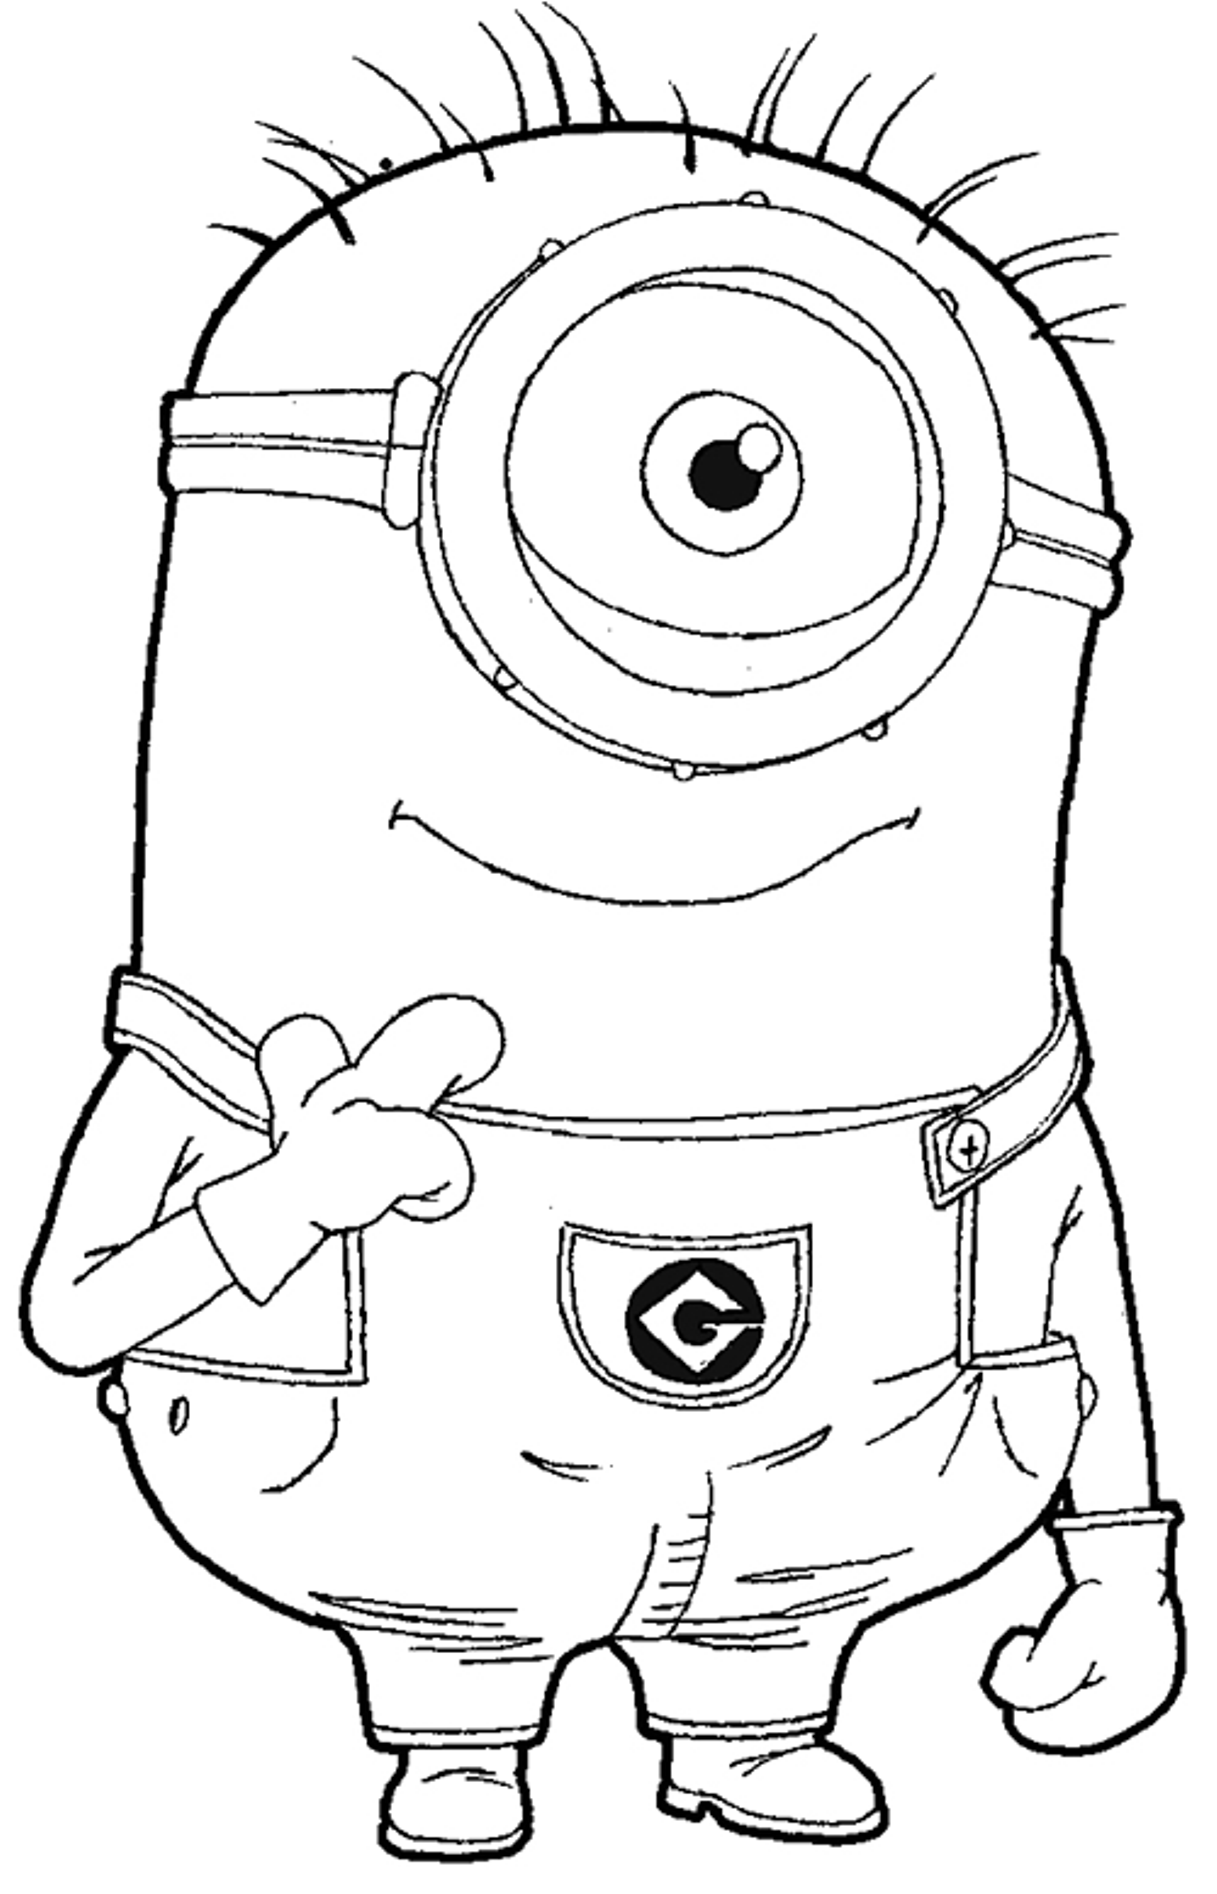 Minion Coloring Pics : Smiley Minion Despicable Me Coloring Pages .